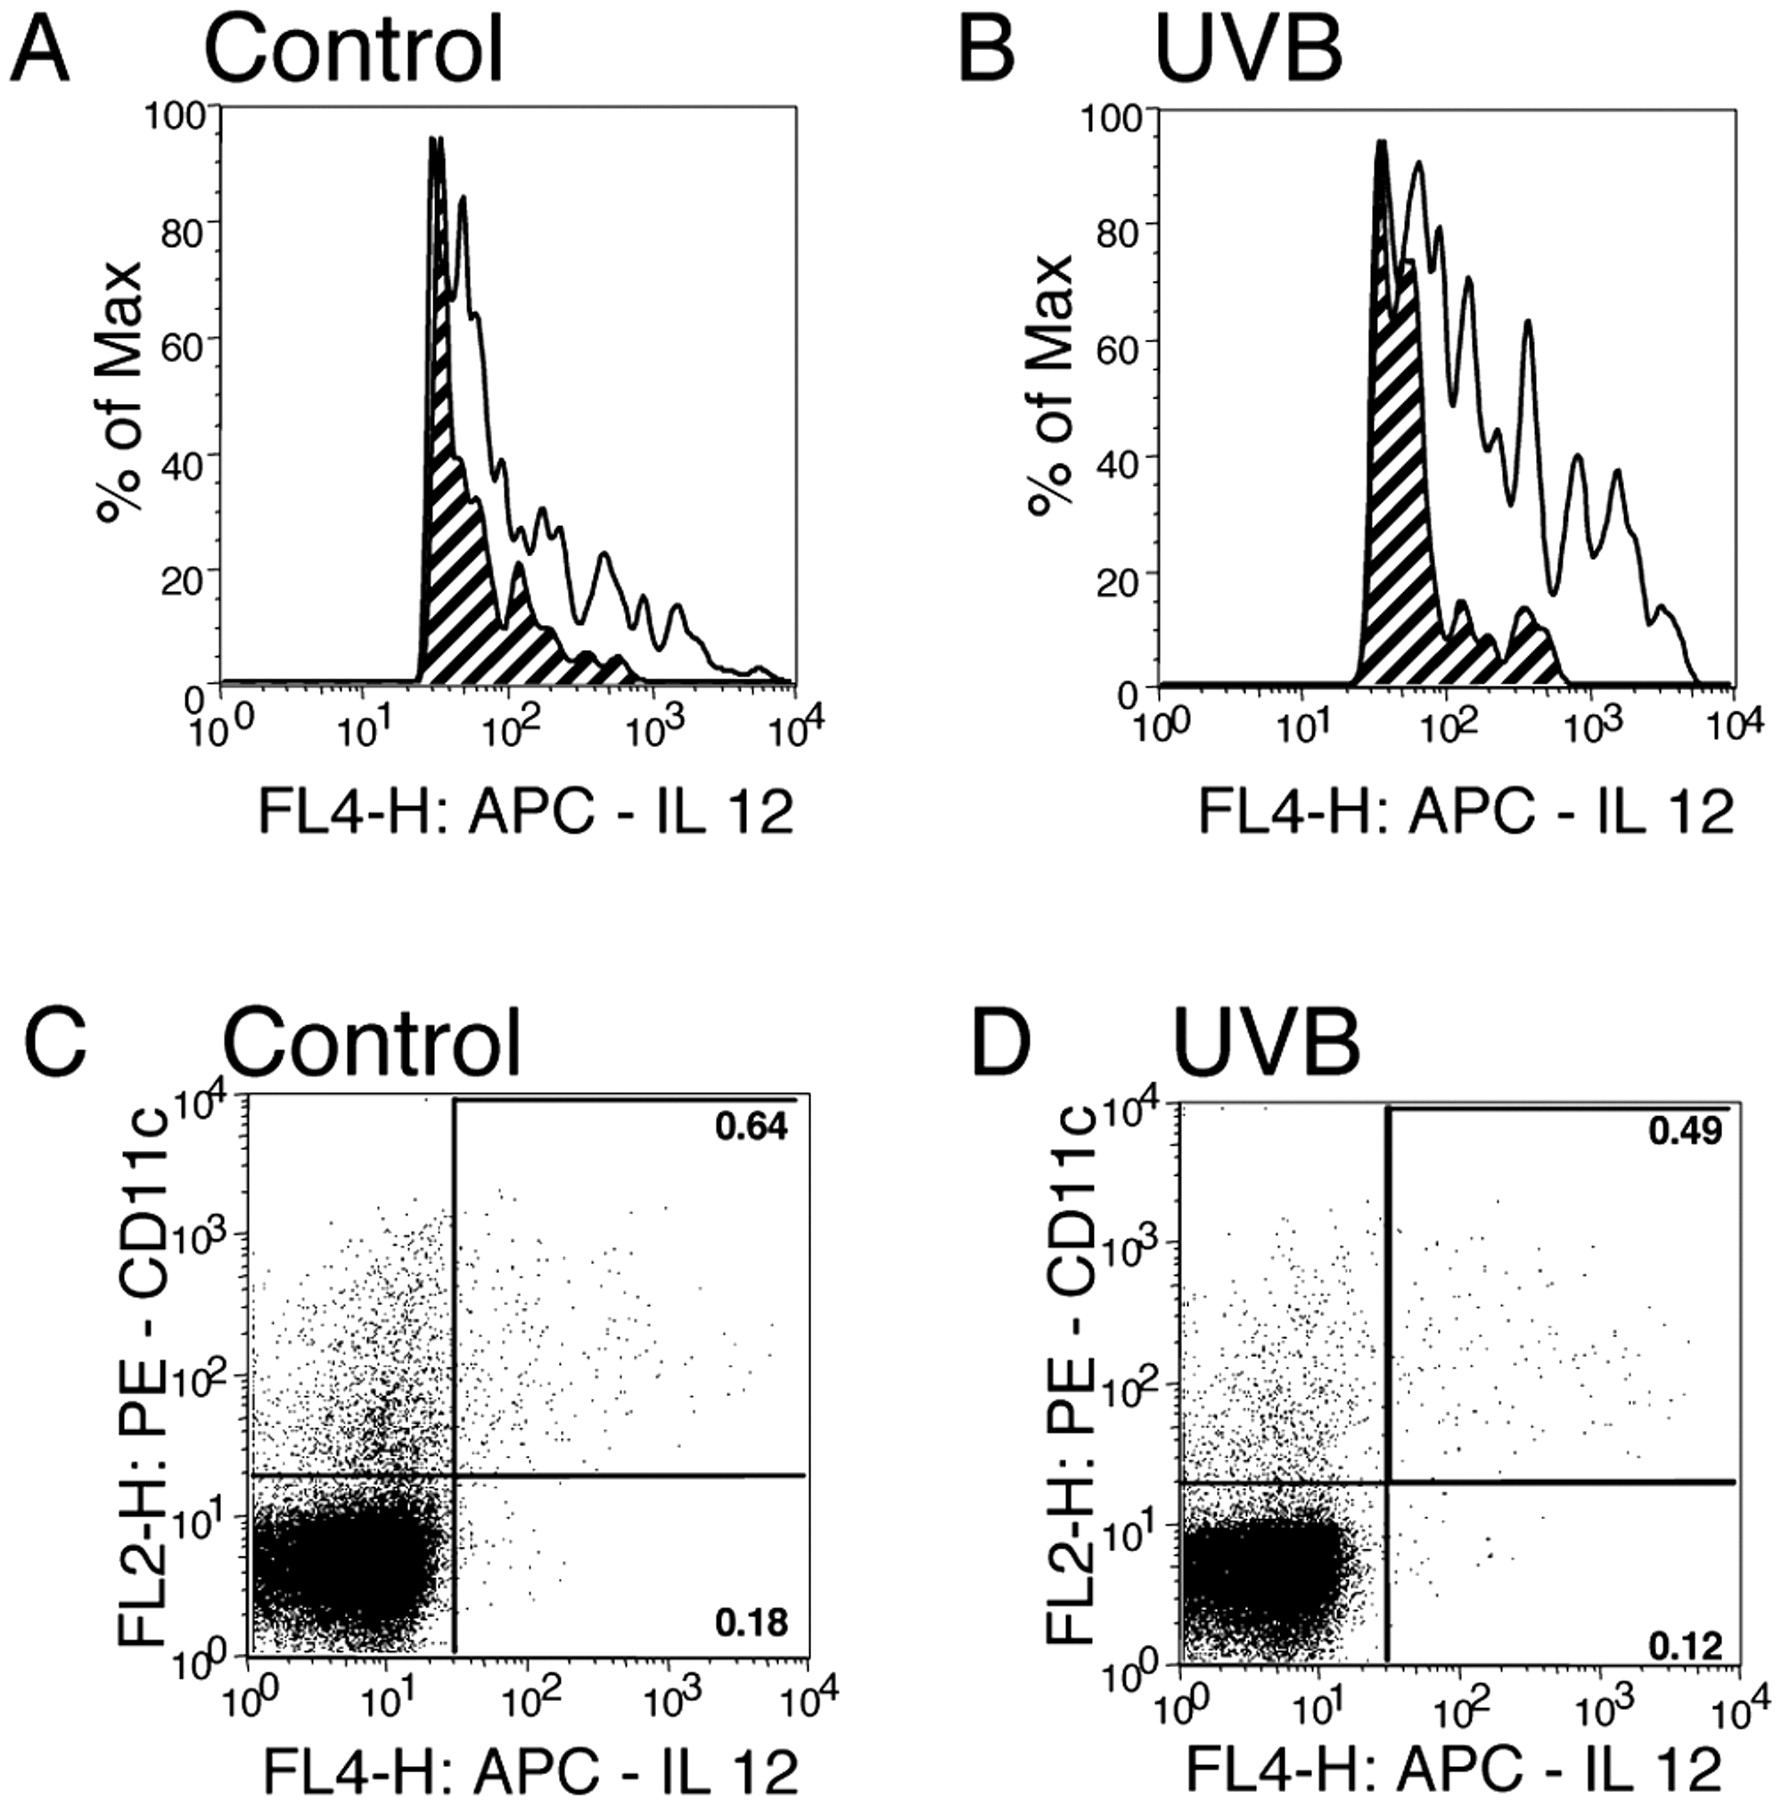 Primary Defect in UVB-Induced Systemic Immunomodulation Does Not